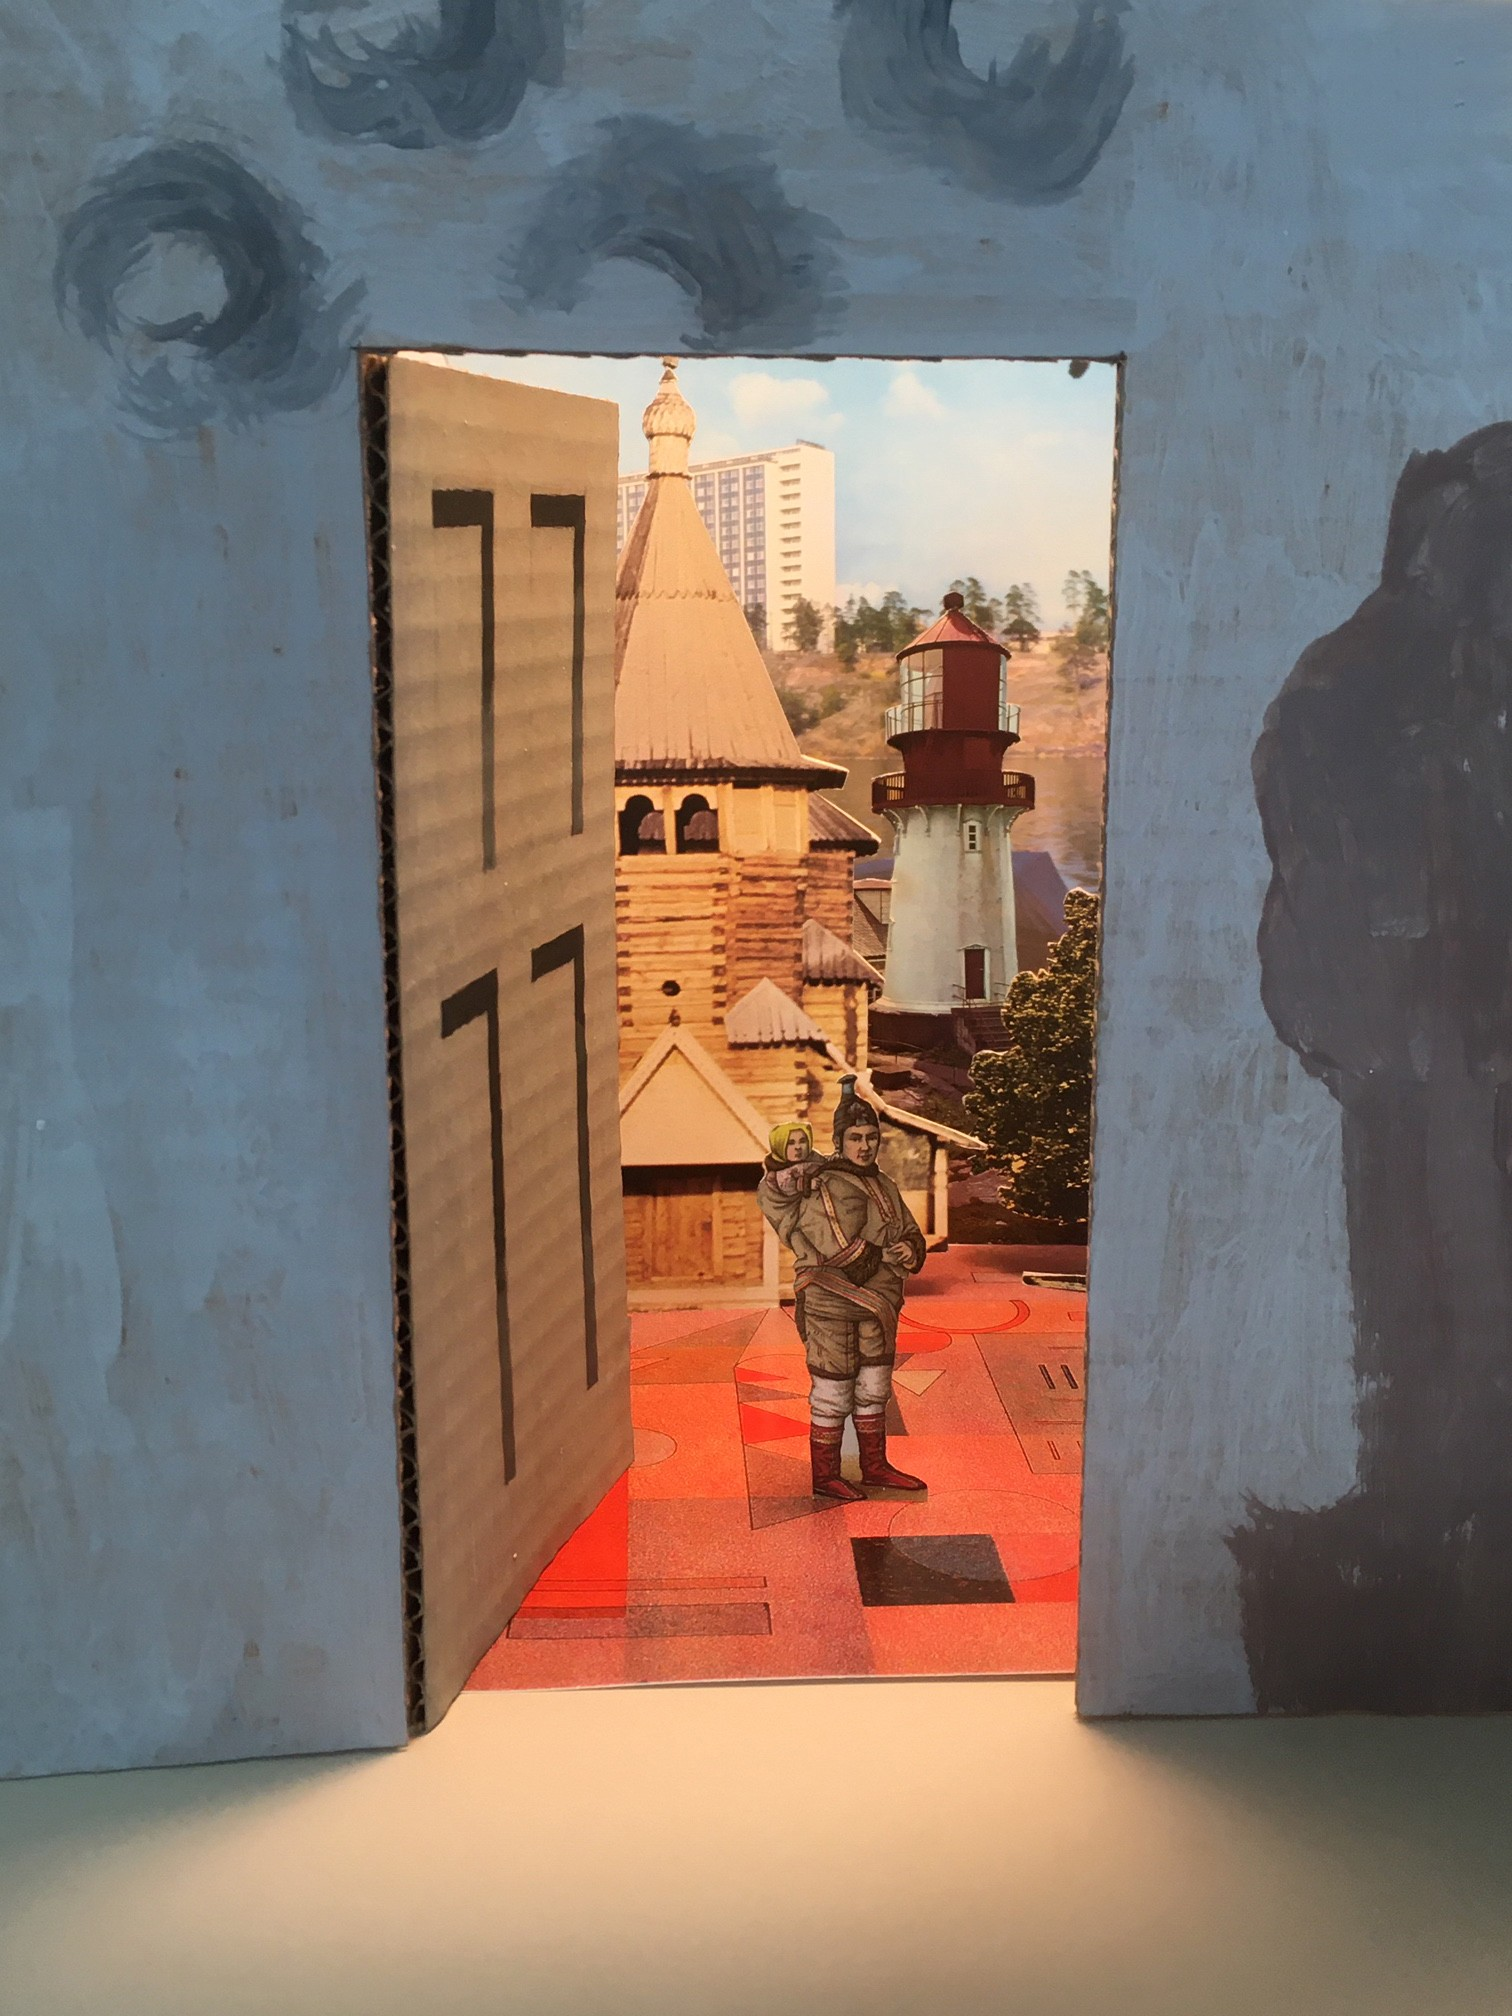 A piece of cardboard decorated to look like a wall with a door opens onto a surreal collage landscape showing a woman carrying a child with a variety of buildings in the background including a tower block and a lighthouse